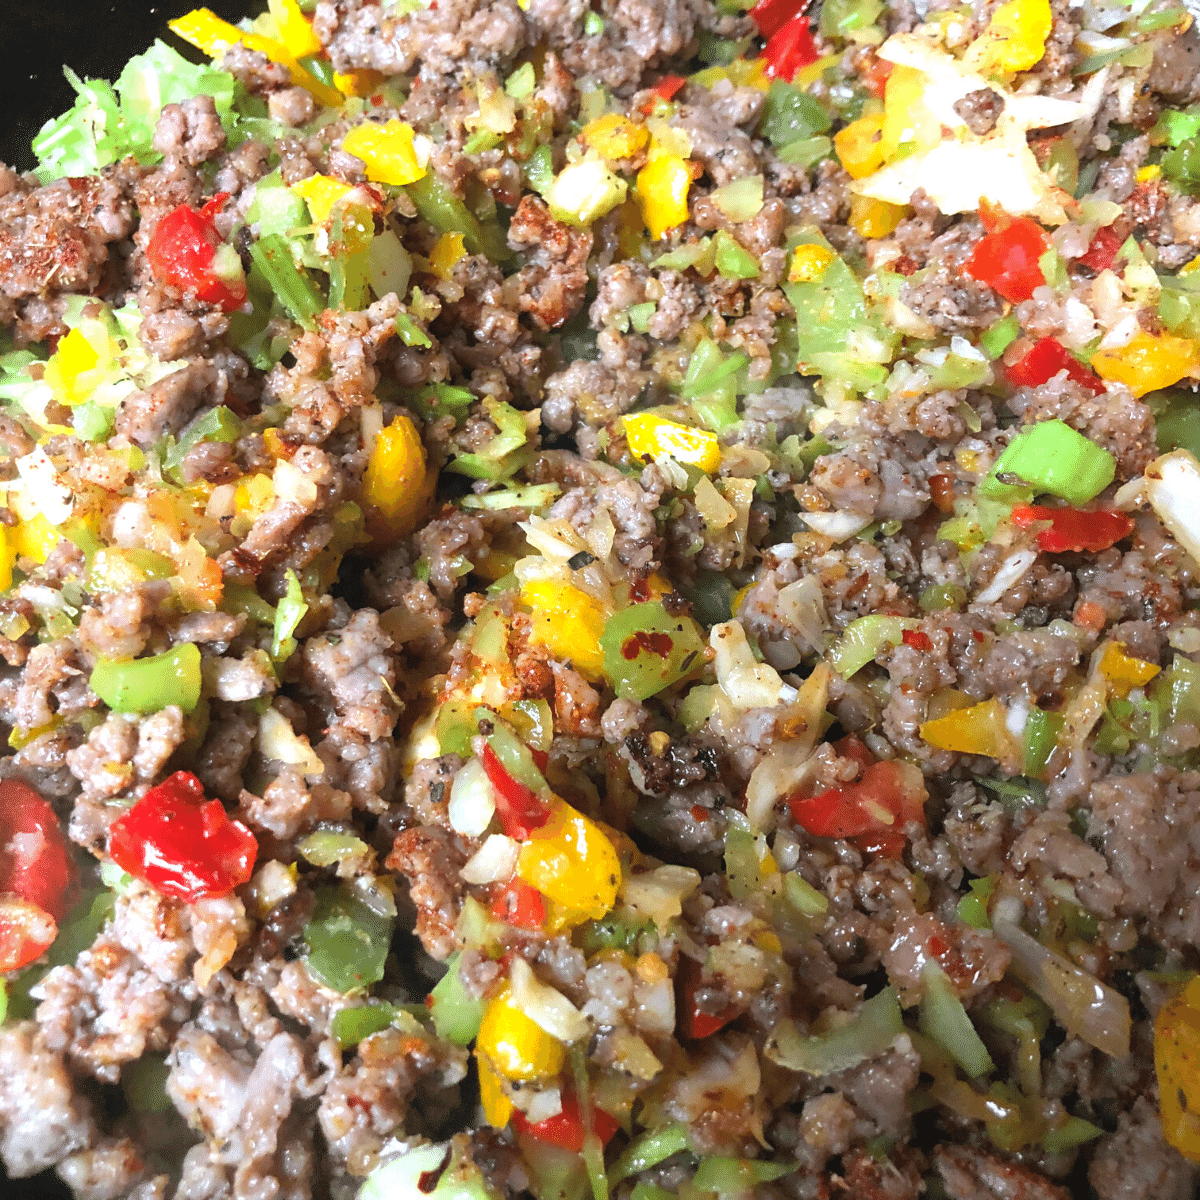 cheeseburger salad recipe keto gluten free low carb